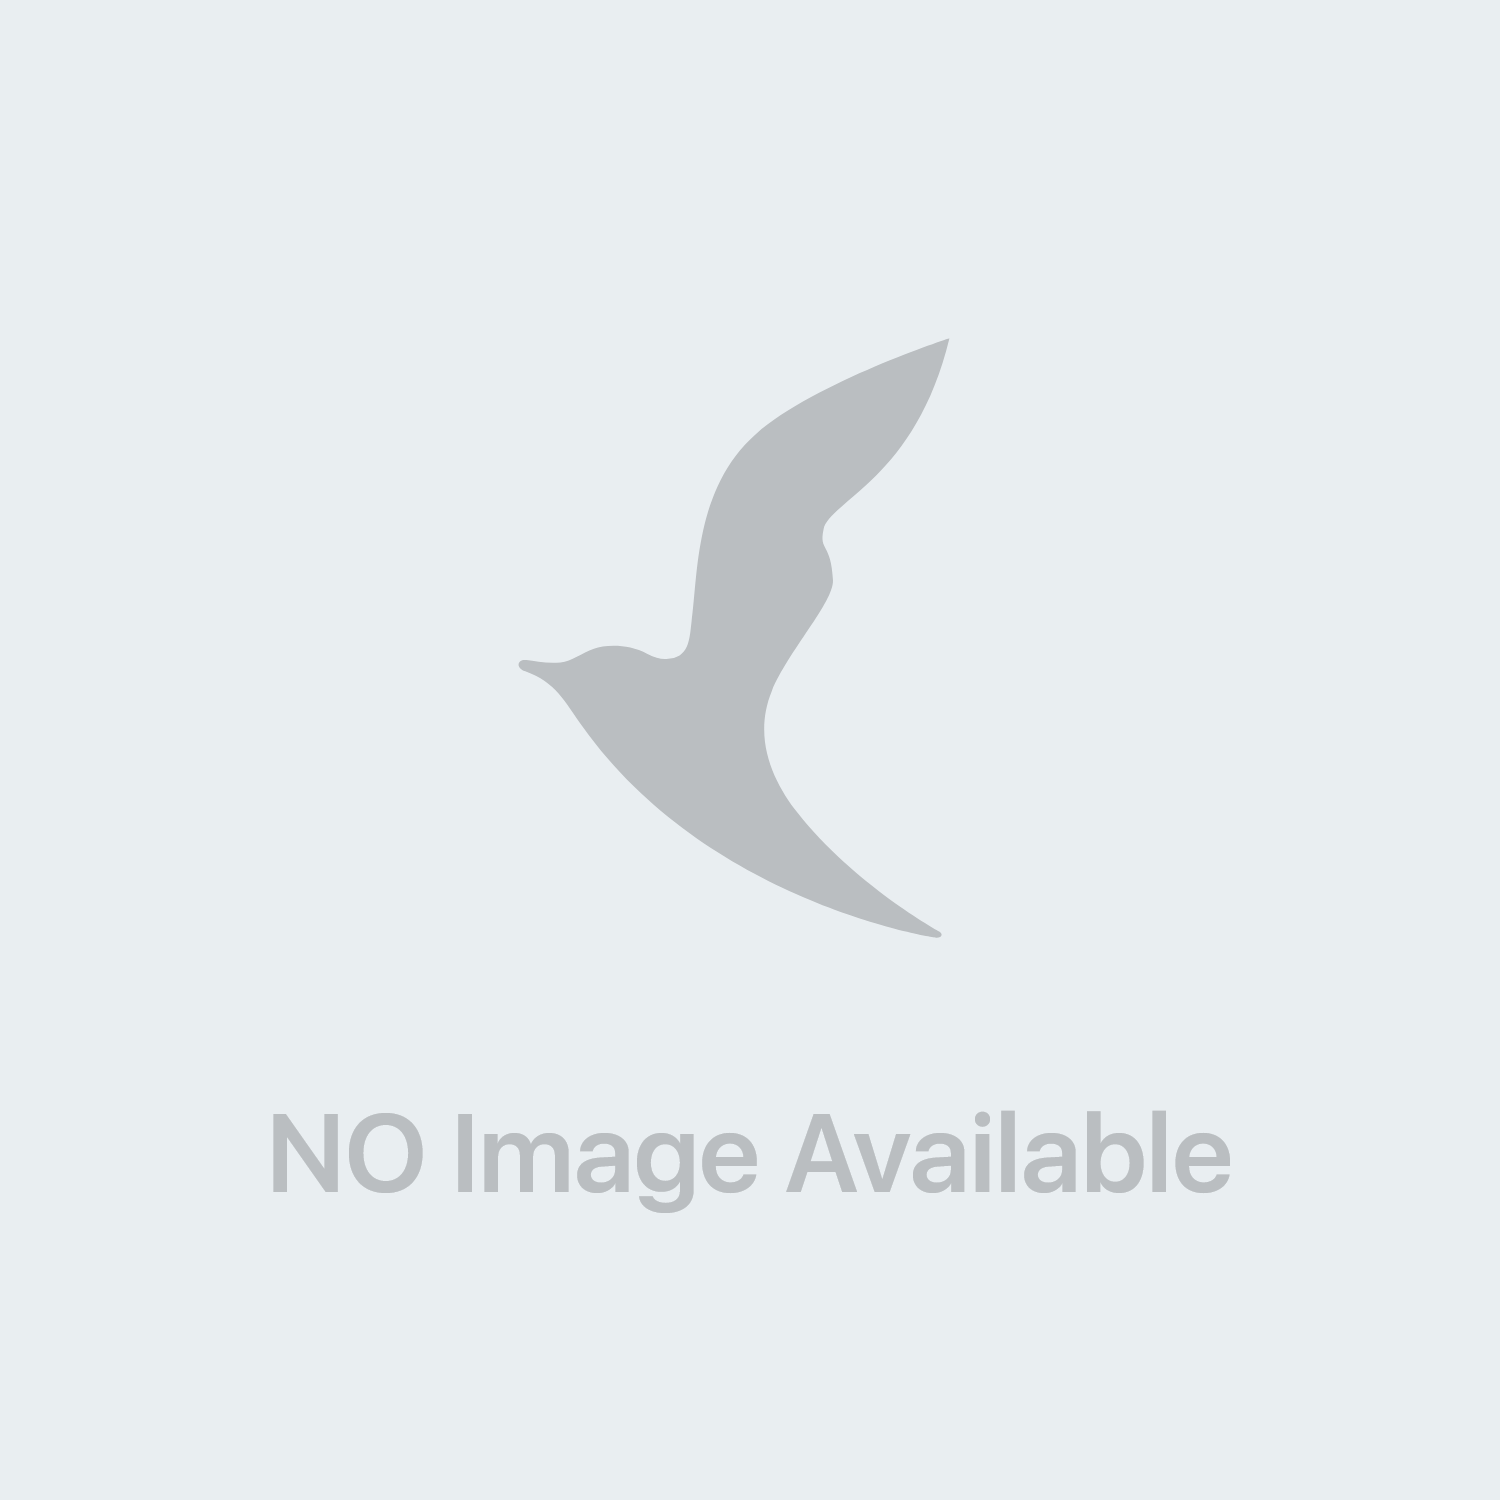 Optive Plus UD Gocce Oculari 30 Flaconcini Monodose 0,4 Ml